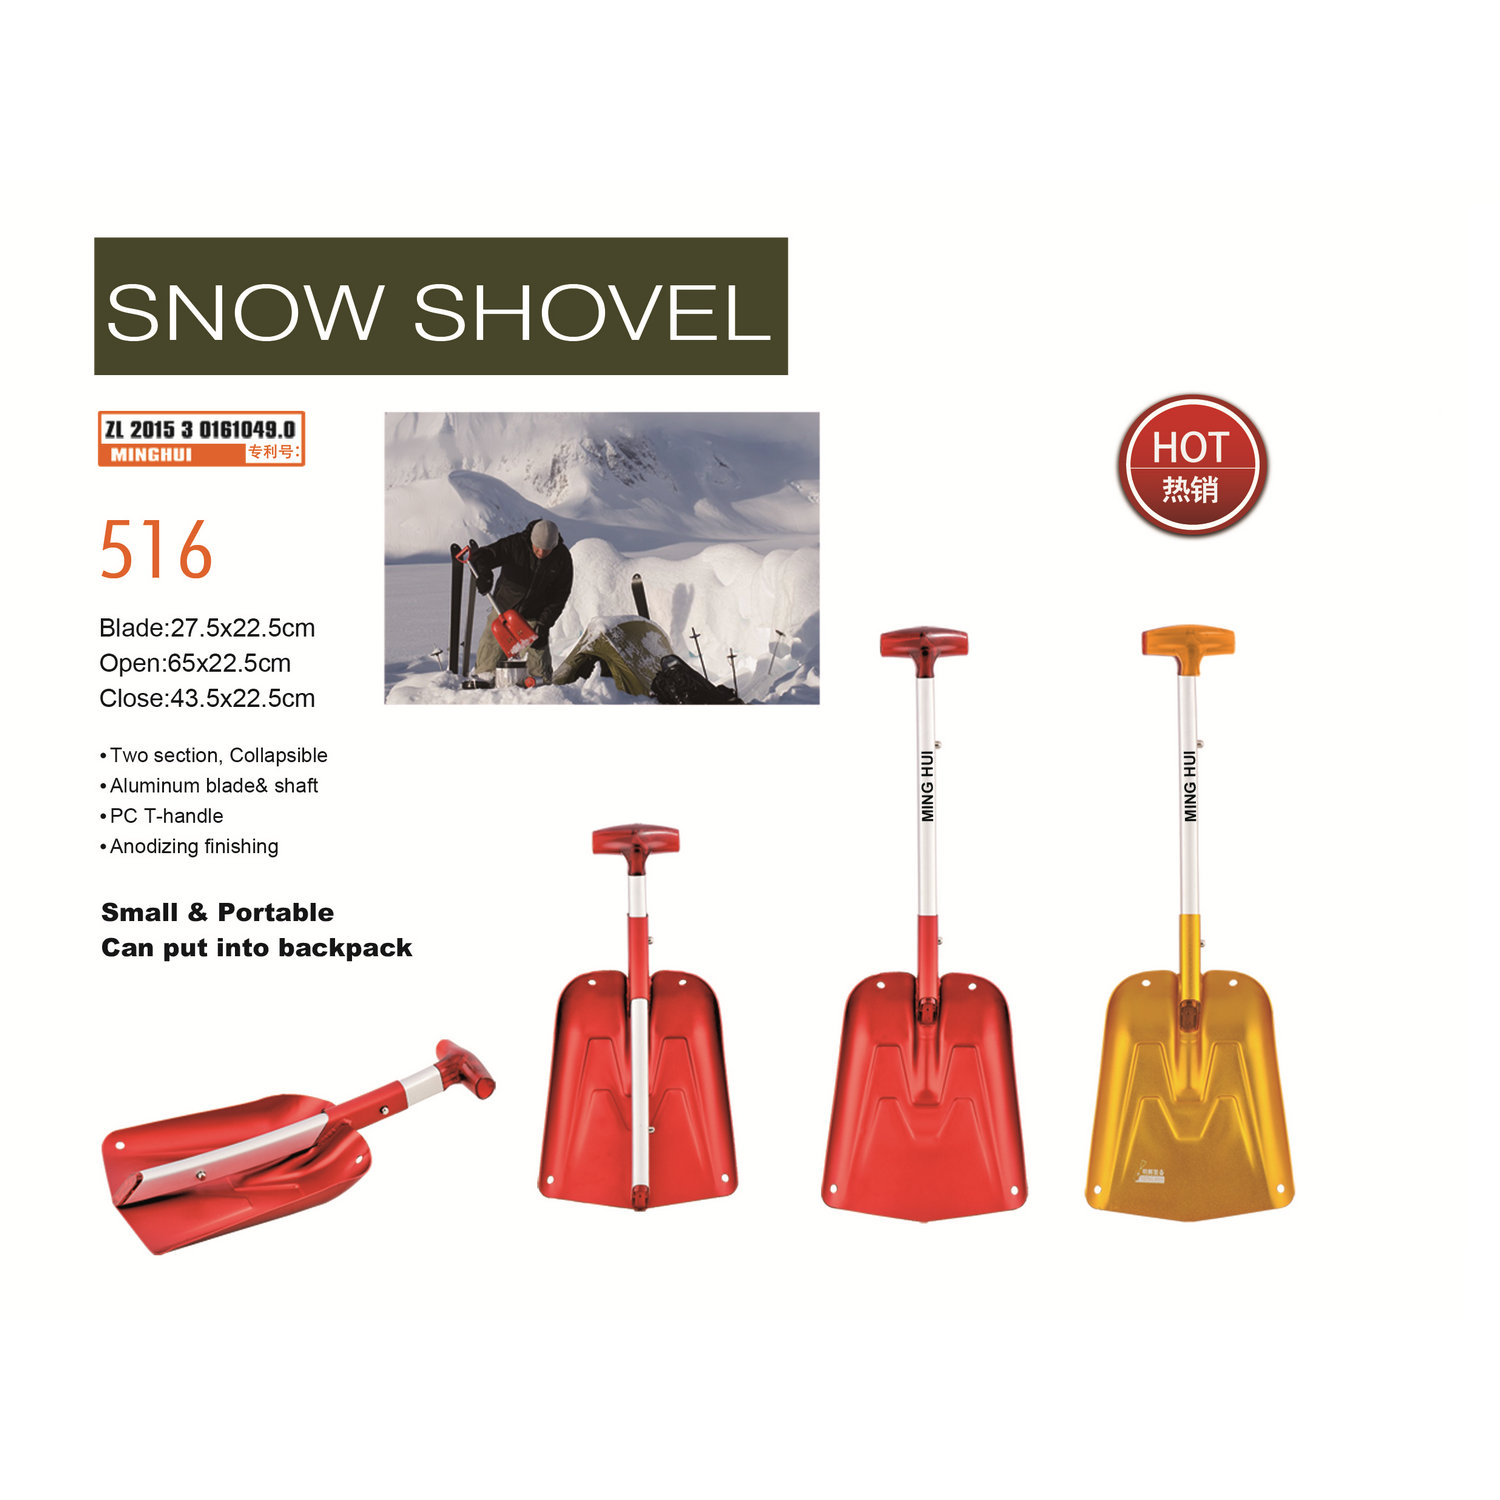 Snow shovel 516